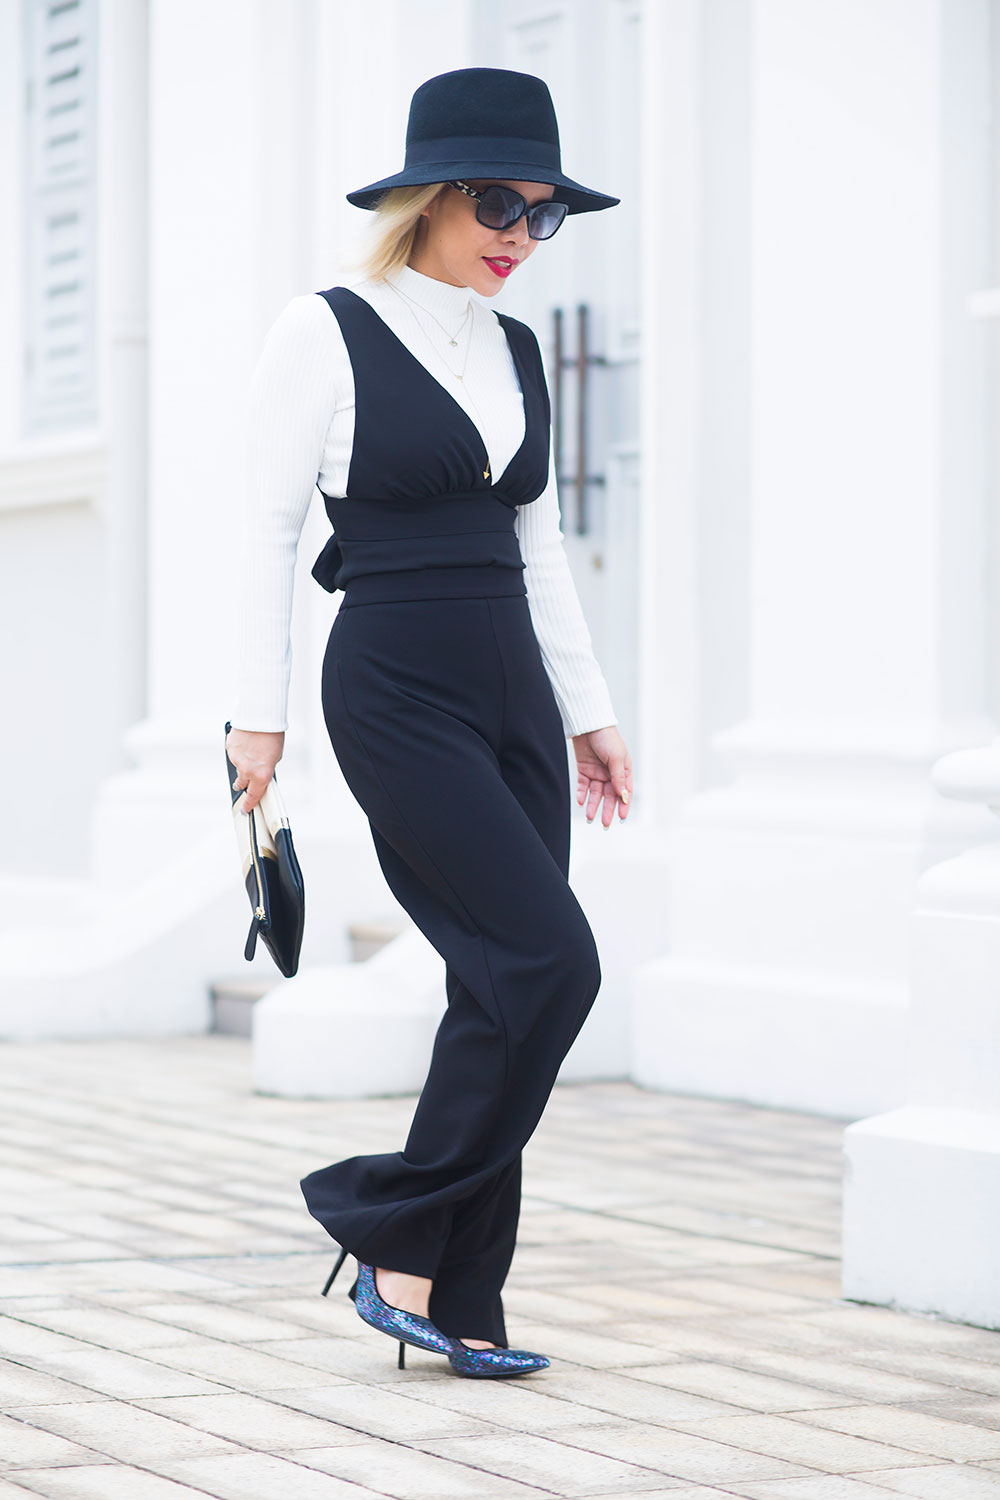 Crystal Phuong- Singapore Fashion Blogger- Social Star Awards- Black and White Outfit